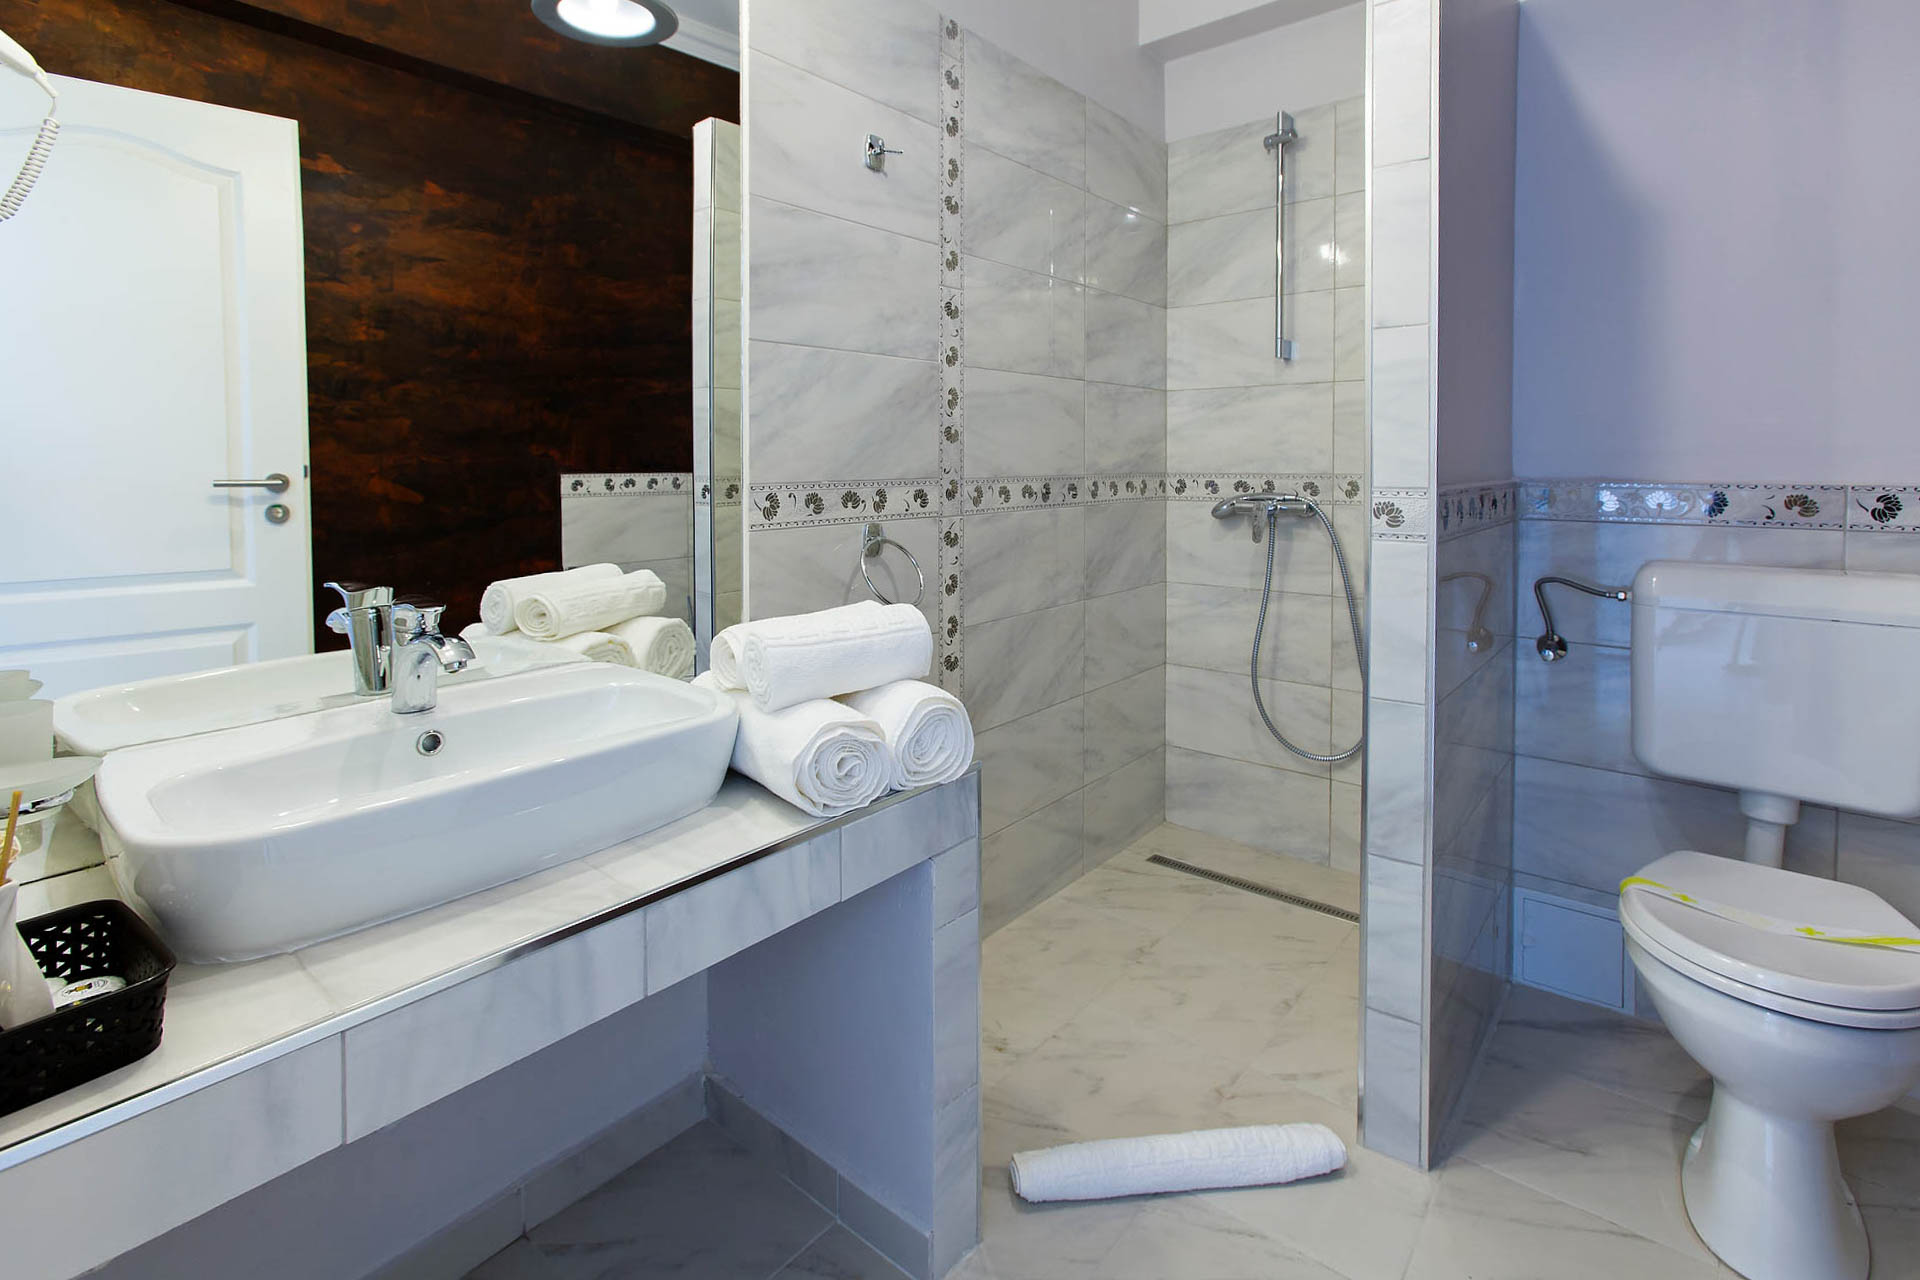 Accommodation Brasov - White Room - Bathroom